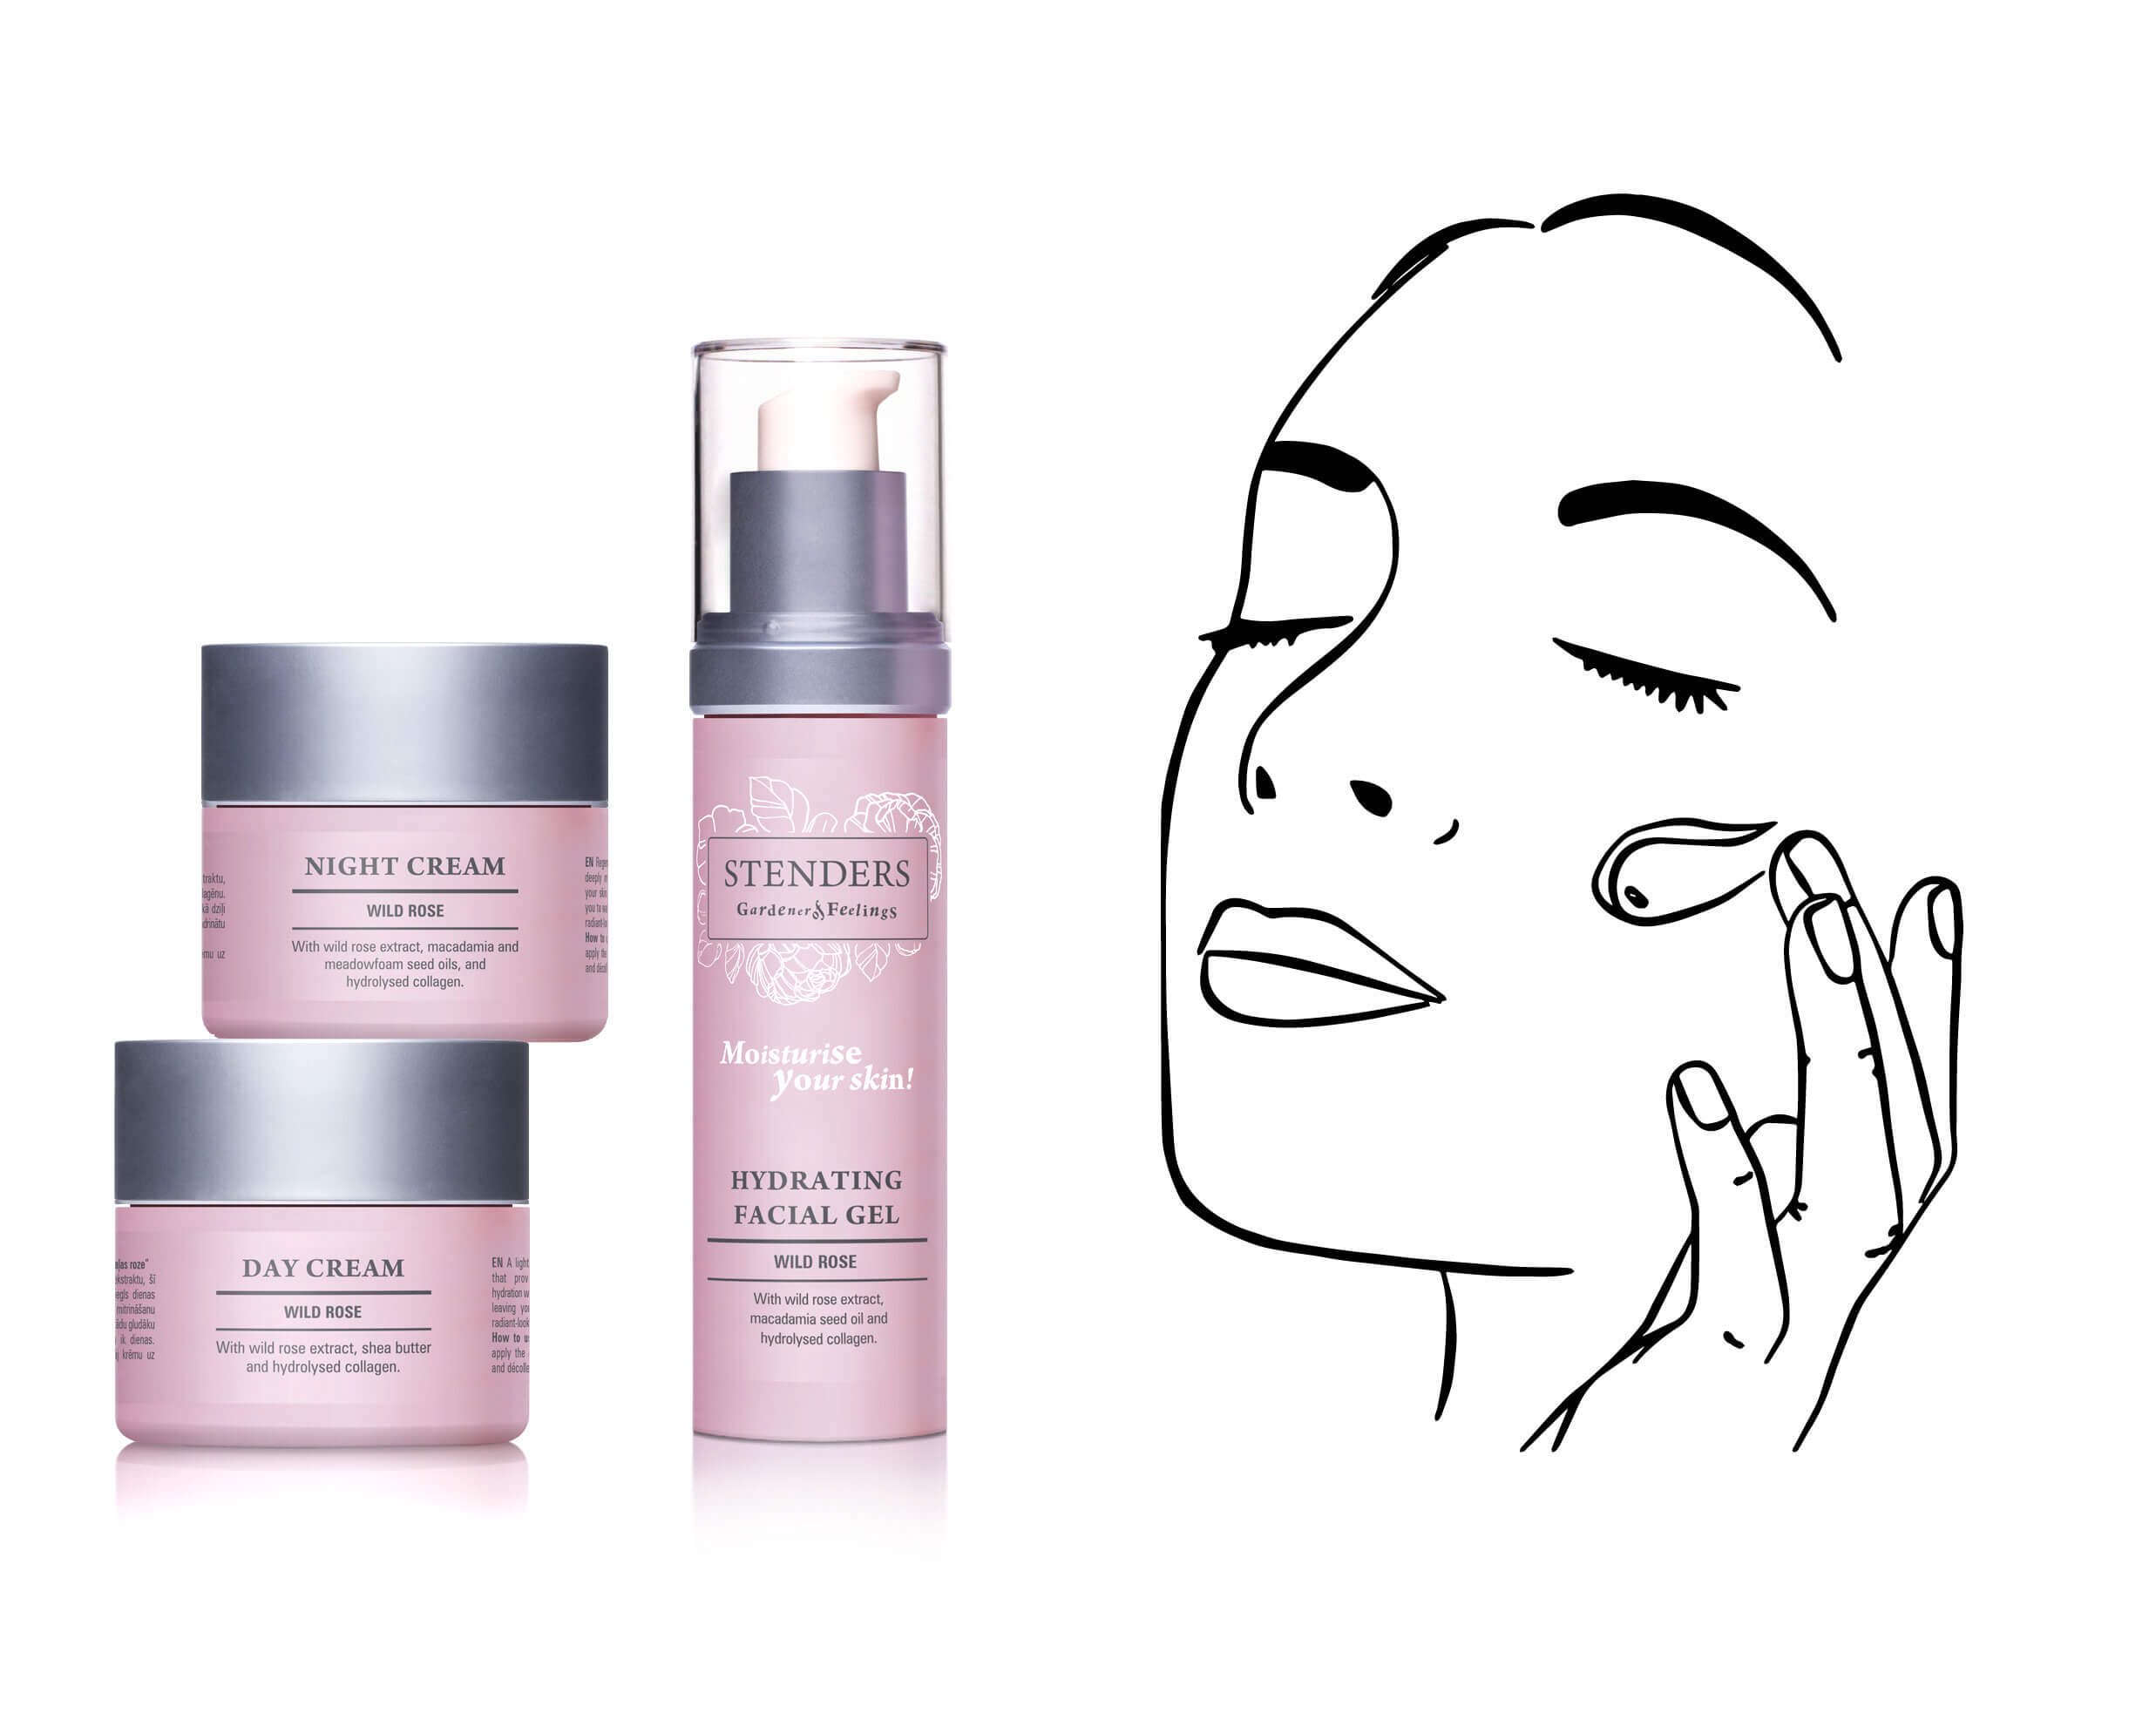 Use Day Cream or Hydrating Facial Gel and Night Cream